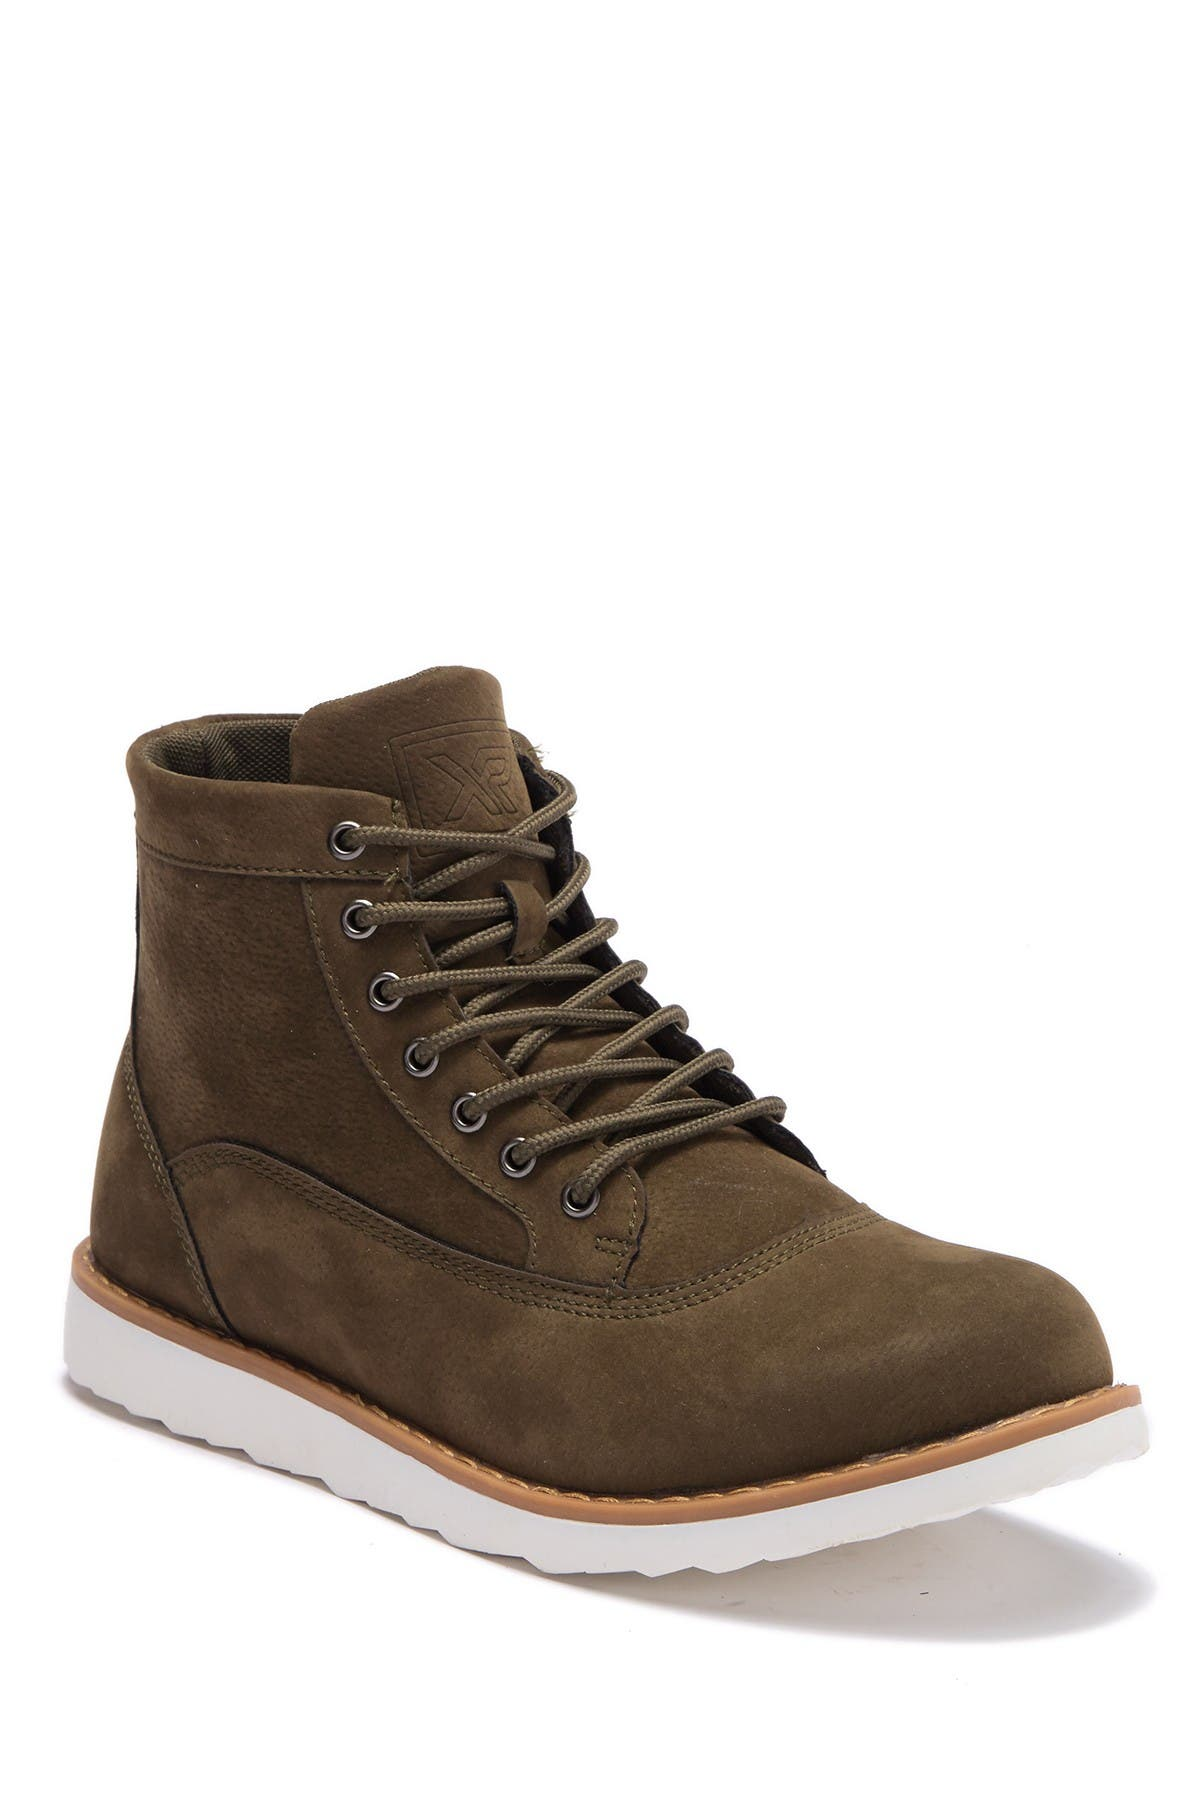 Image of XRAY Ditmas Lace Up Boot